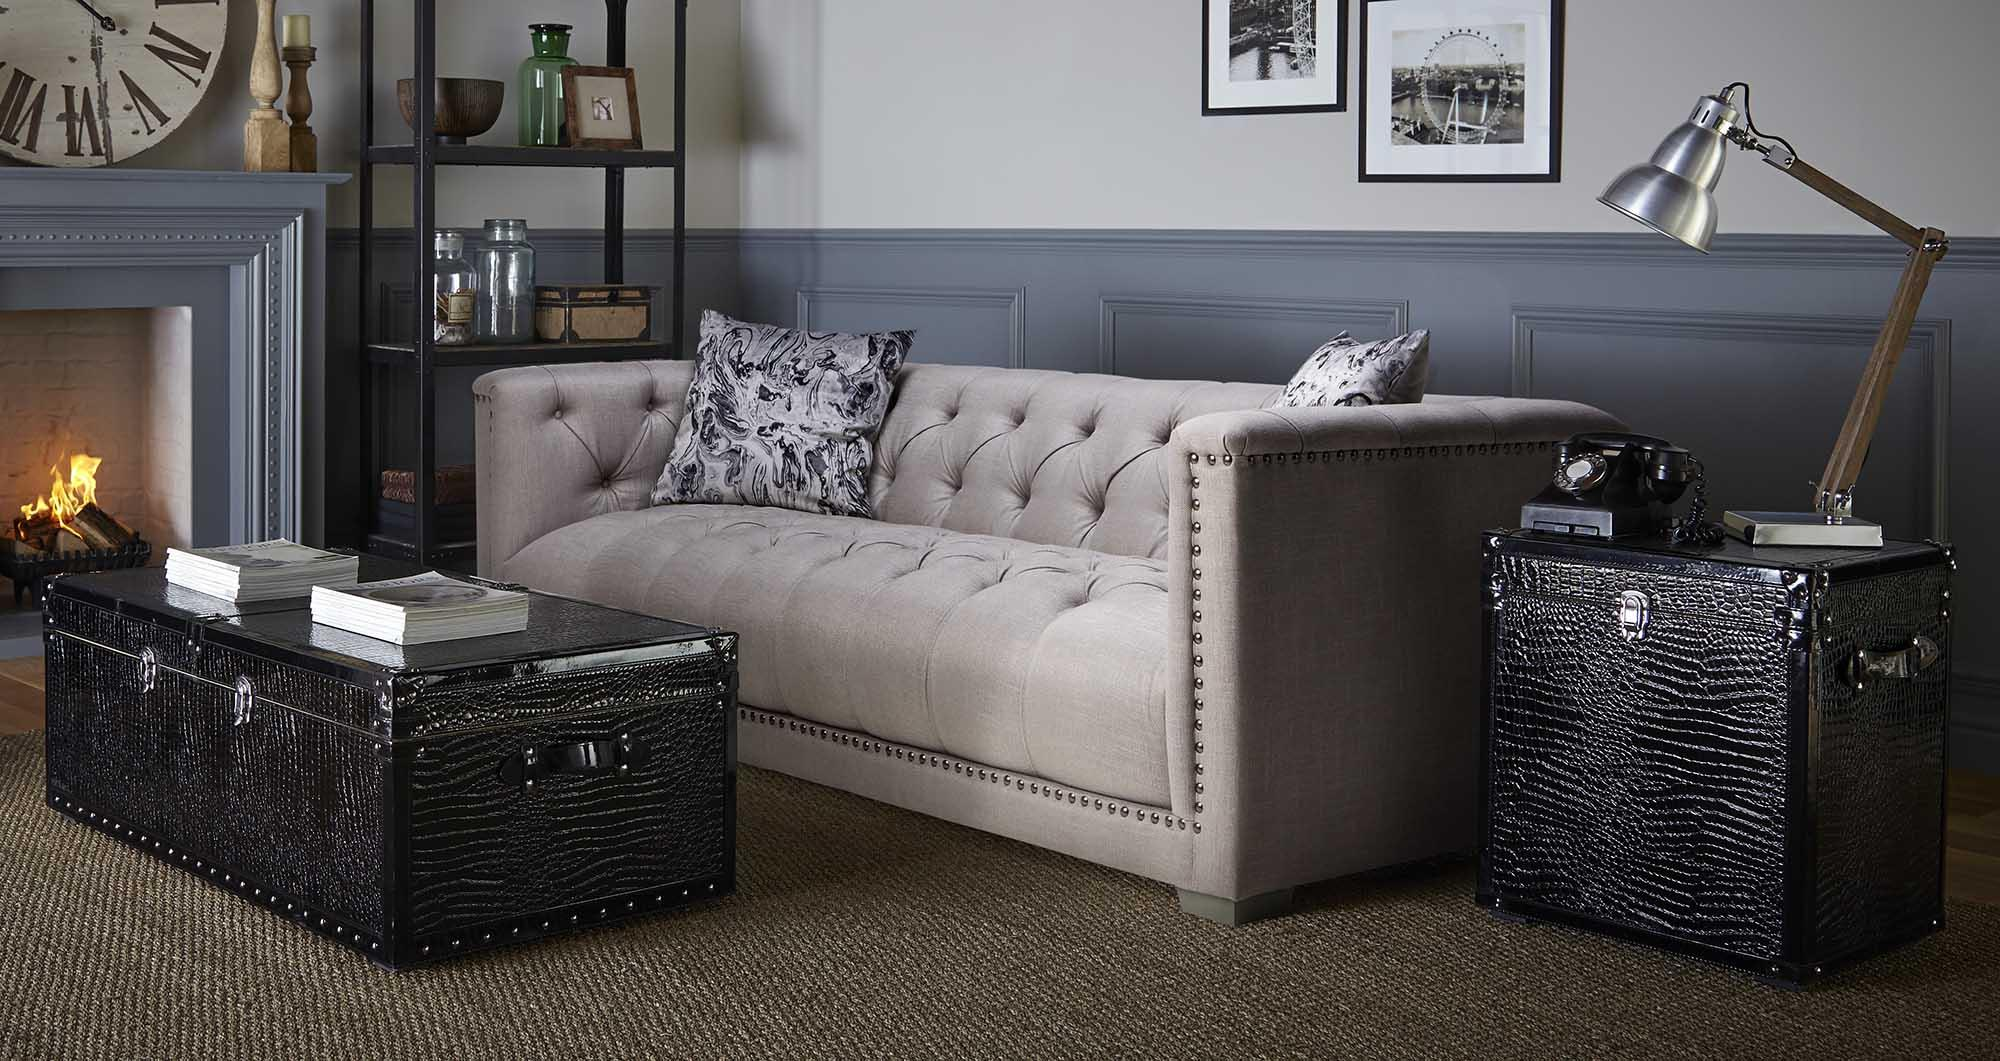 Finding your perfect Chesterfield